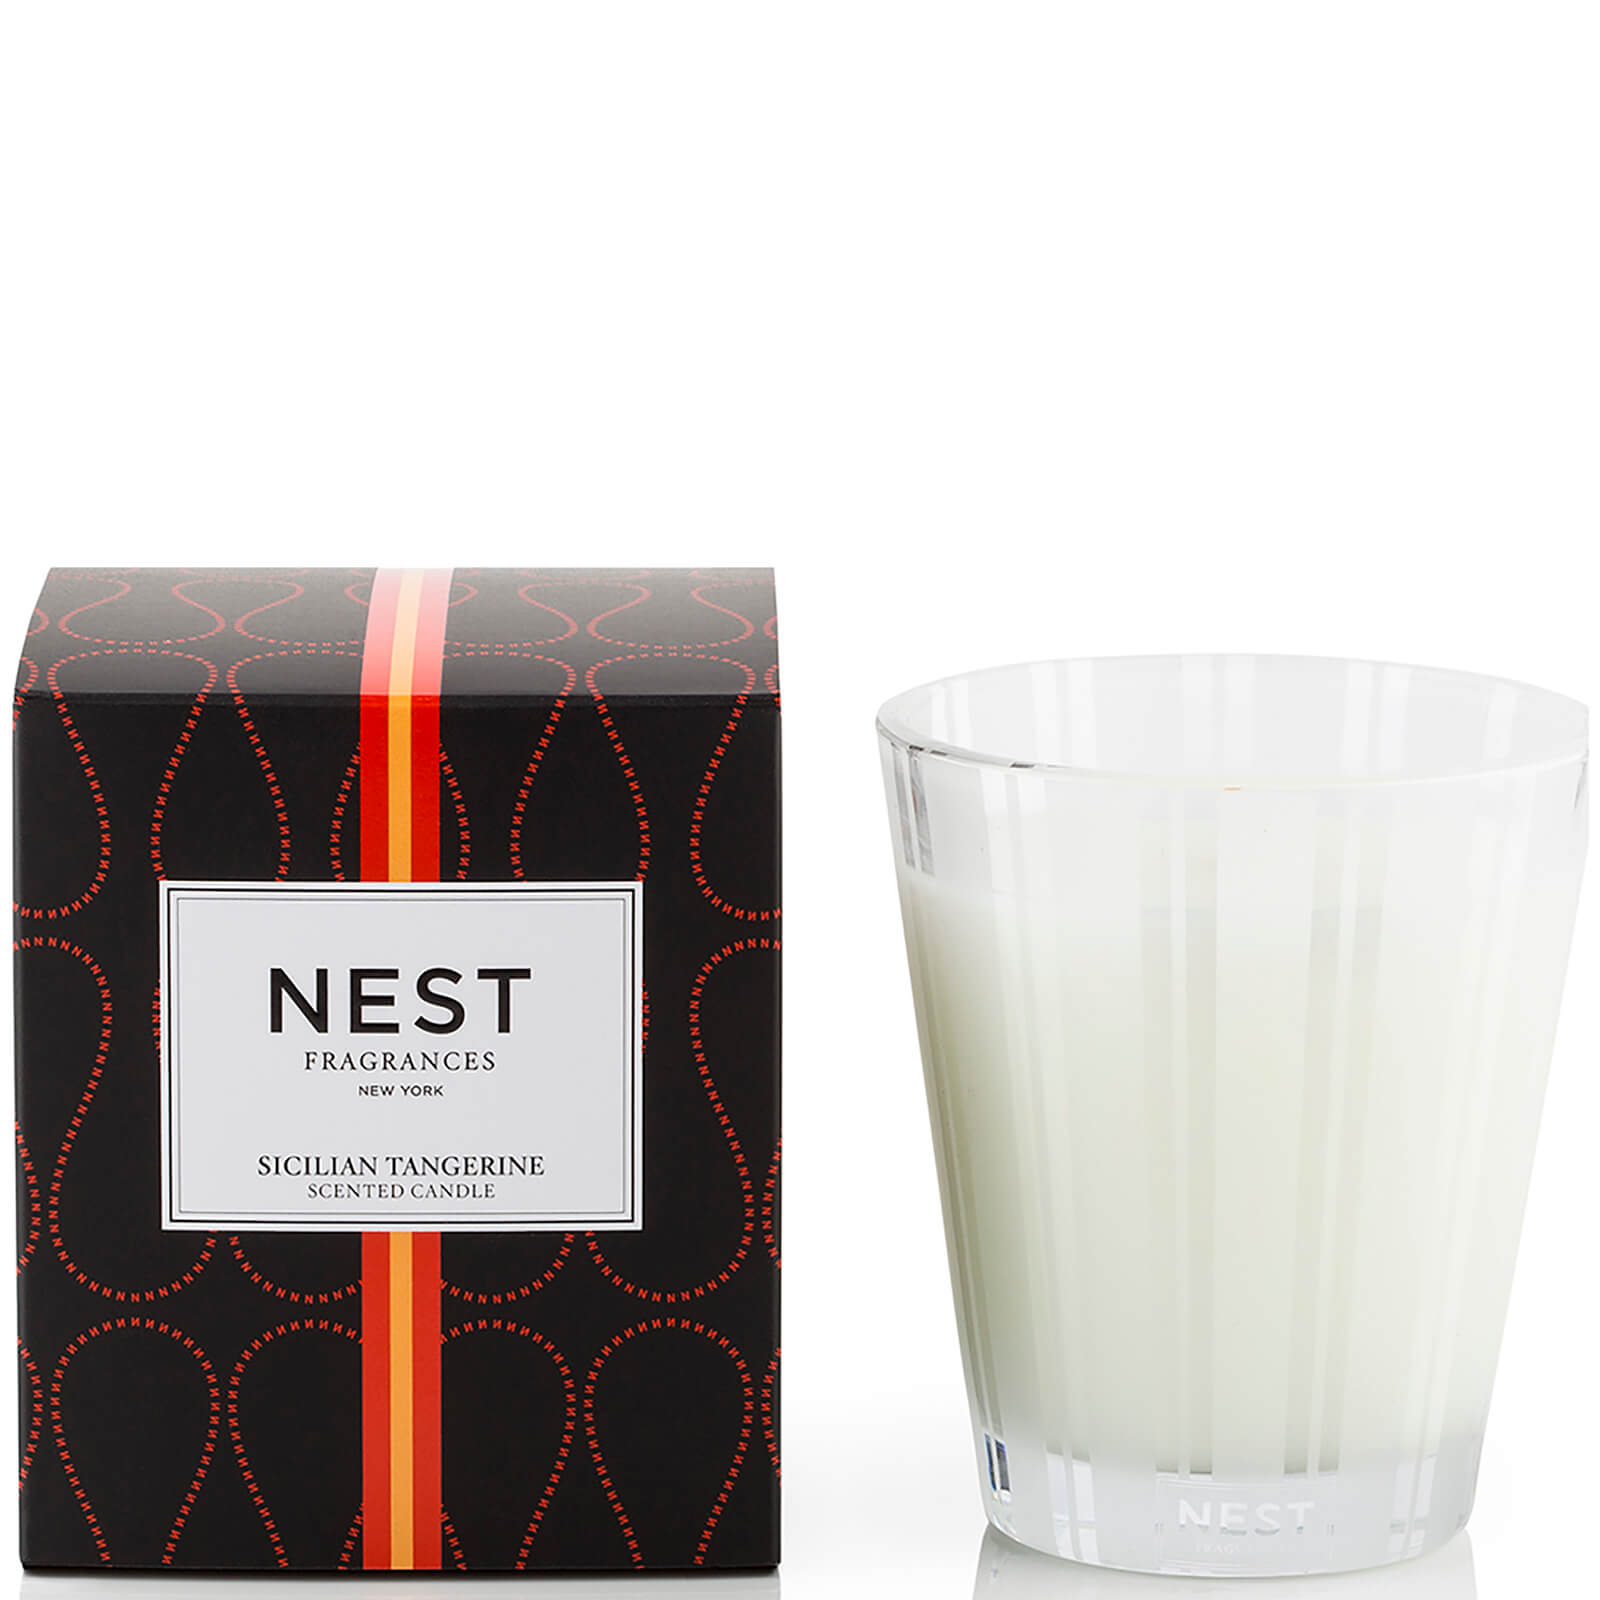 NEST Fragrances Sicilian Tangerine Classic Candle